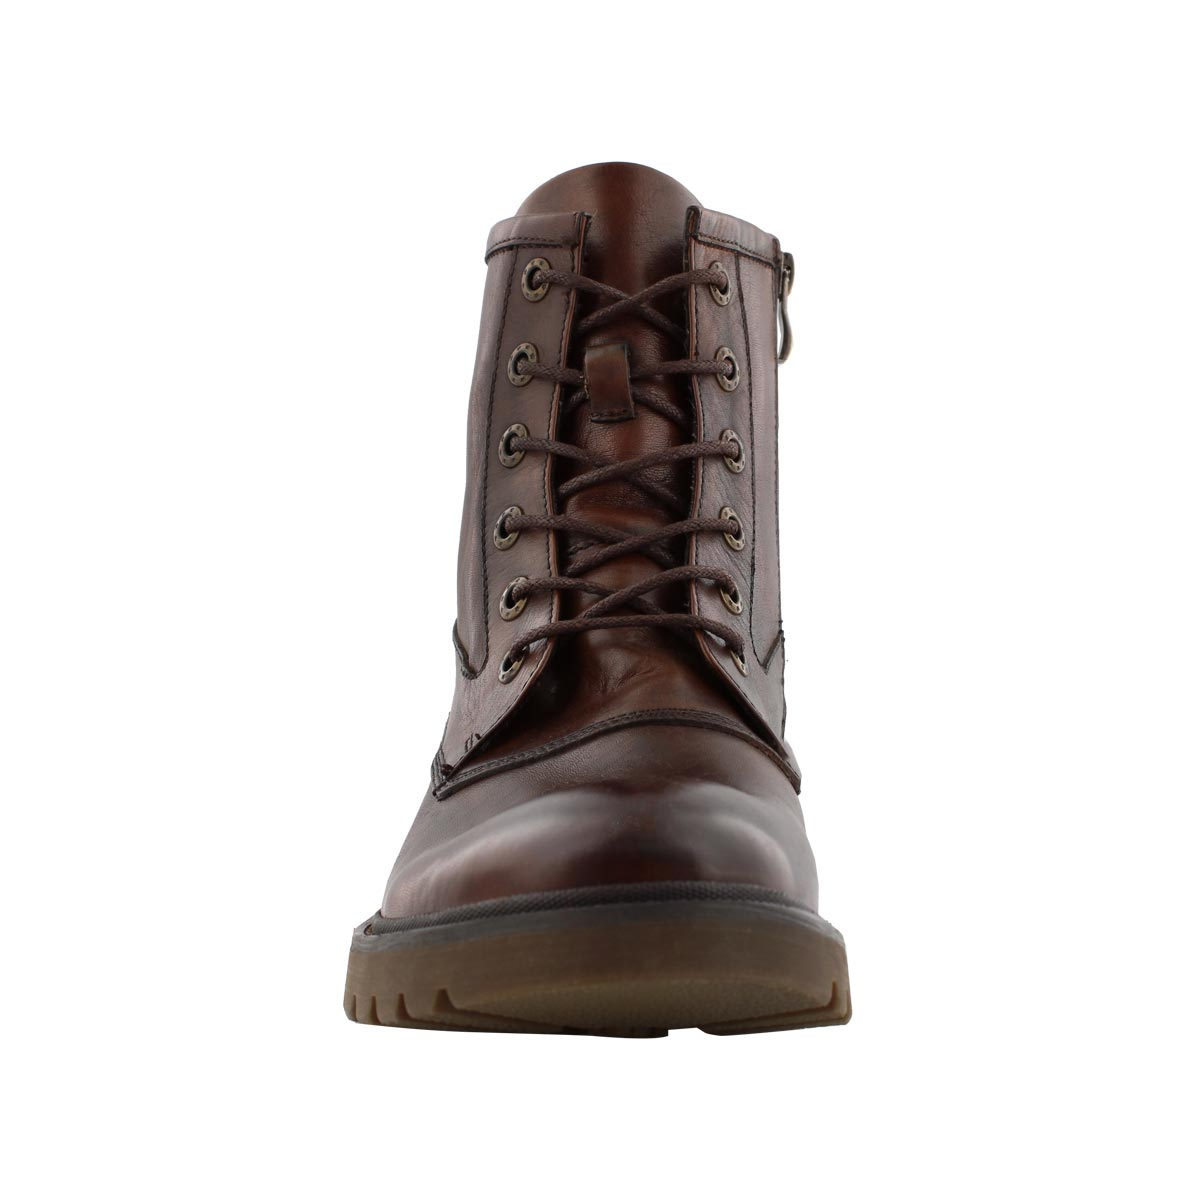 Mns Grand cognac lace up combat boot